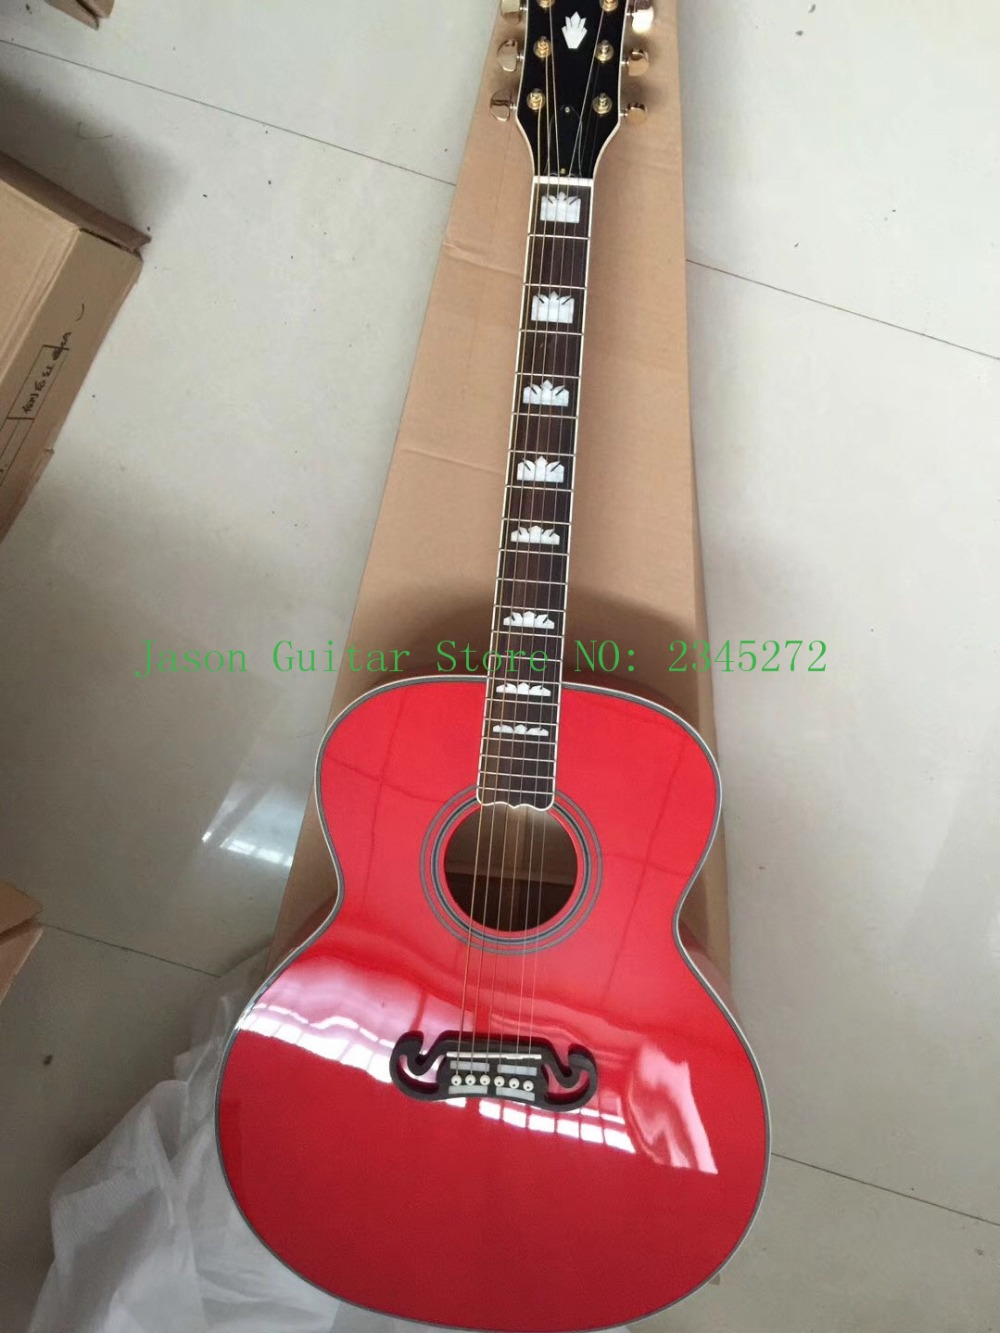 2018 new factory + Chibson J200 folk guitar red color GB200 mixed microphone guitar Jumbo SJ200+free delivery